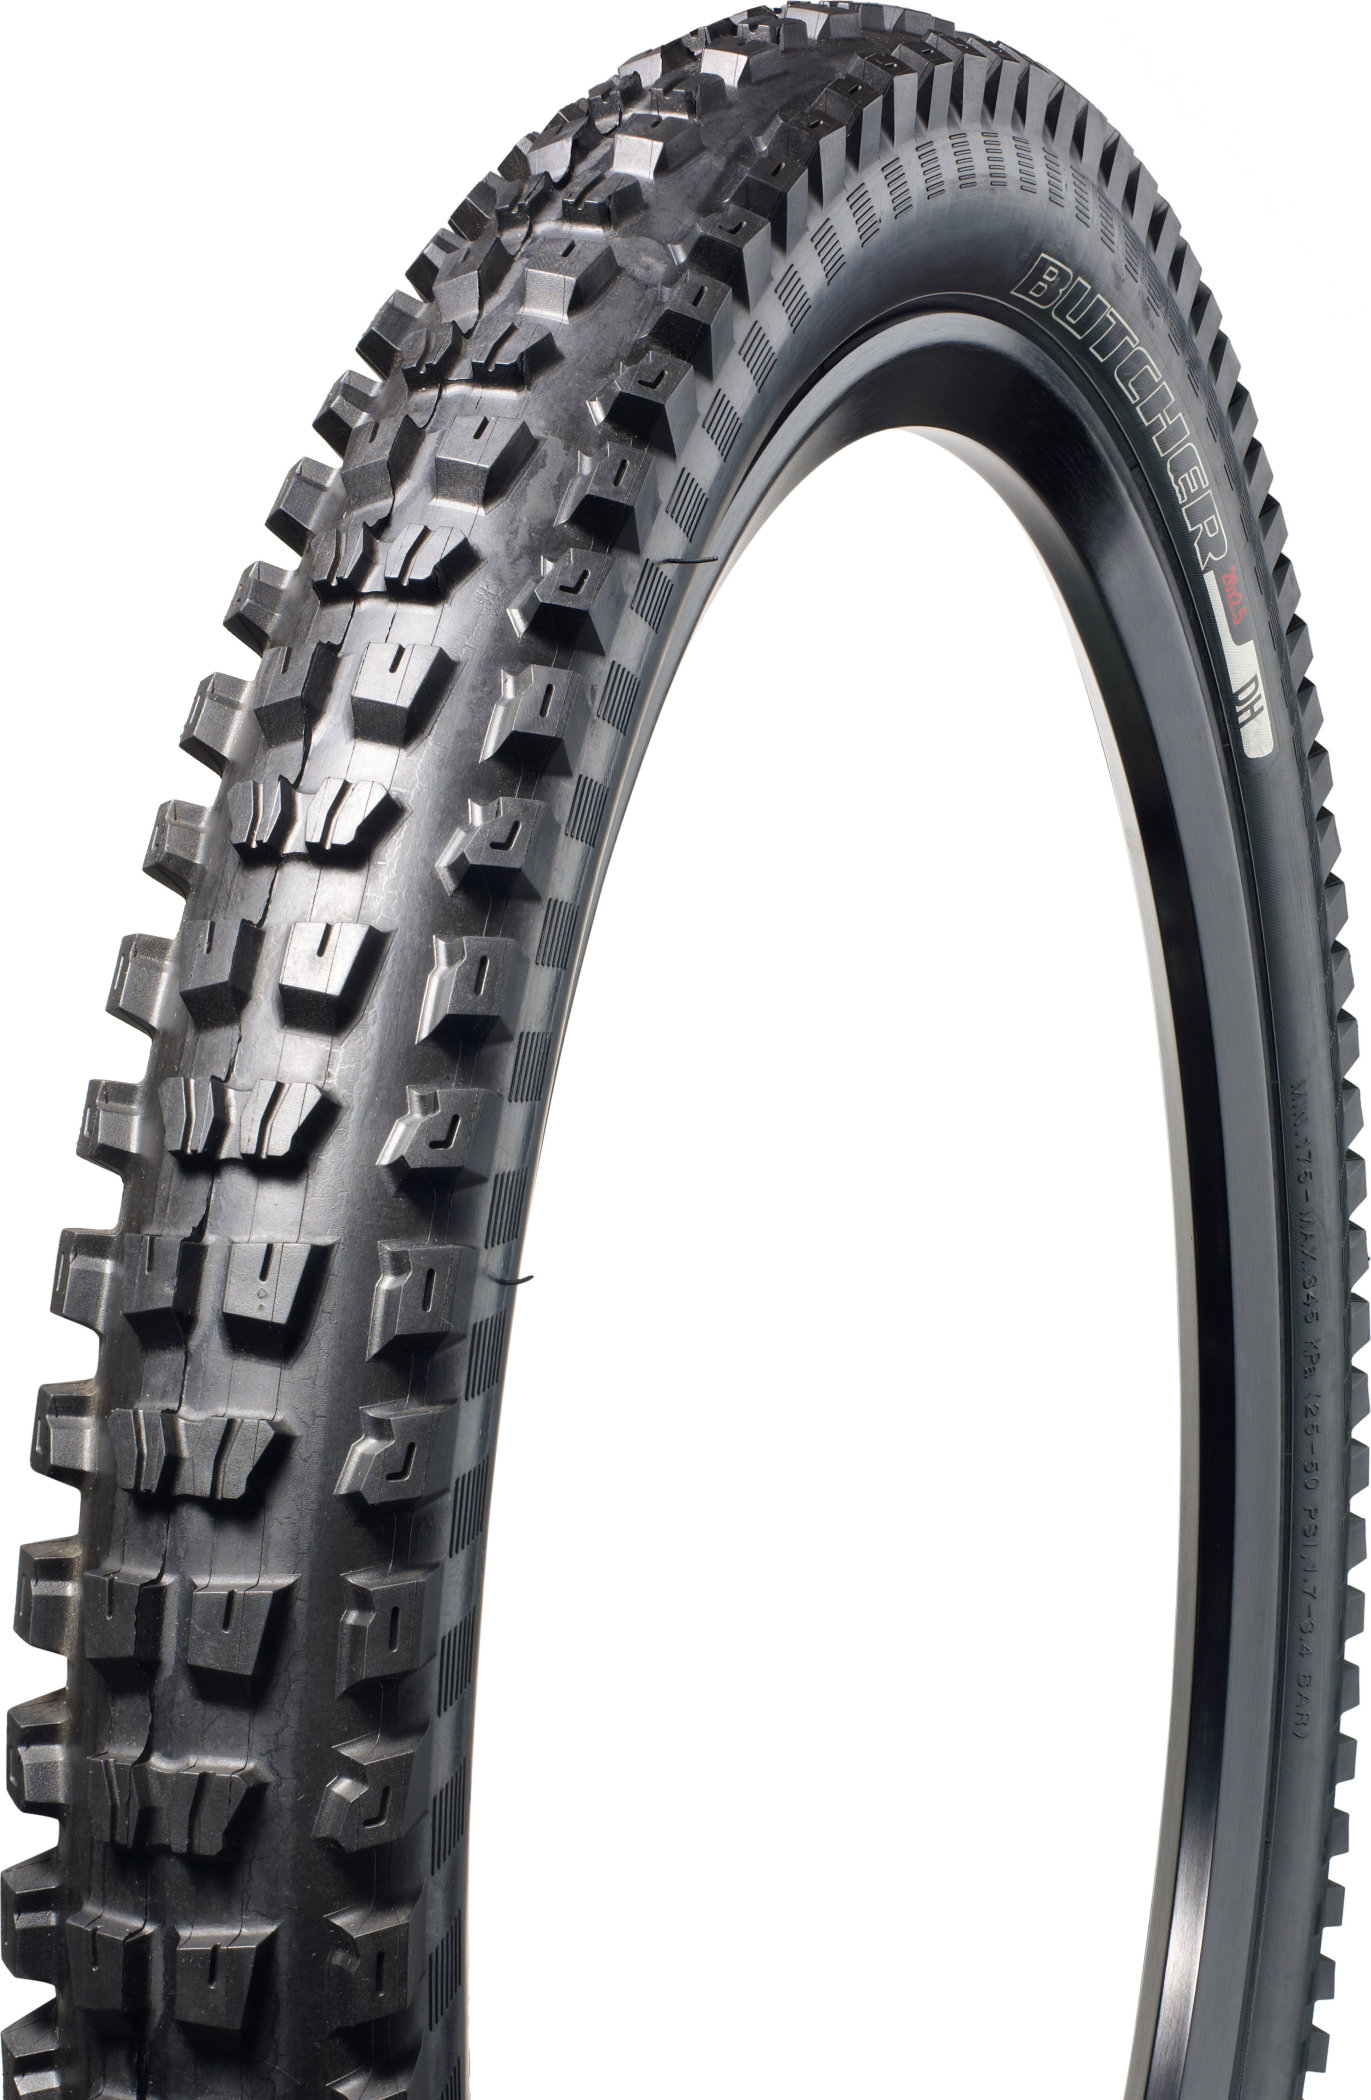 SPECIALIZED BUTCHER DH TIRE 650BX2.5 - SPECIALIZED BUTCHER DH TIRE 650BX2.5